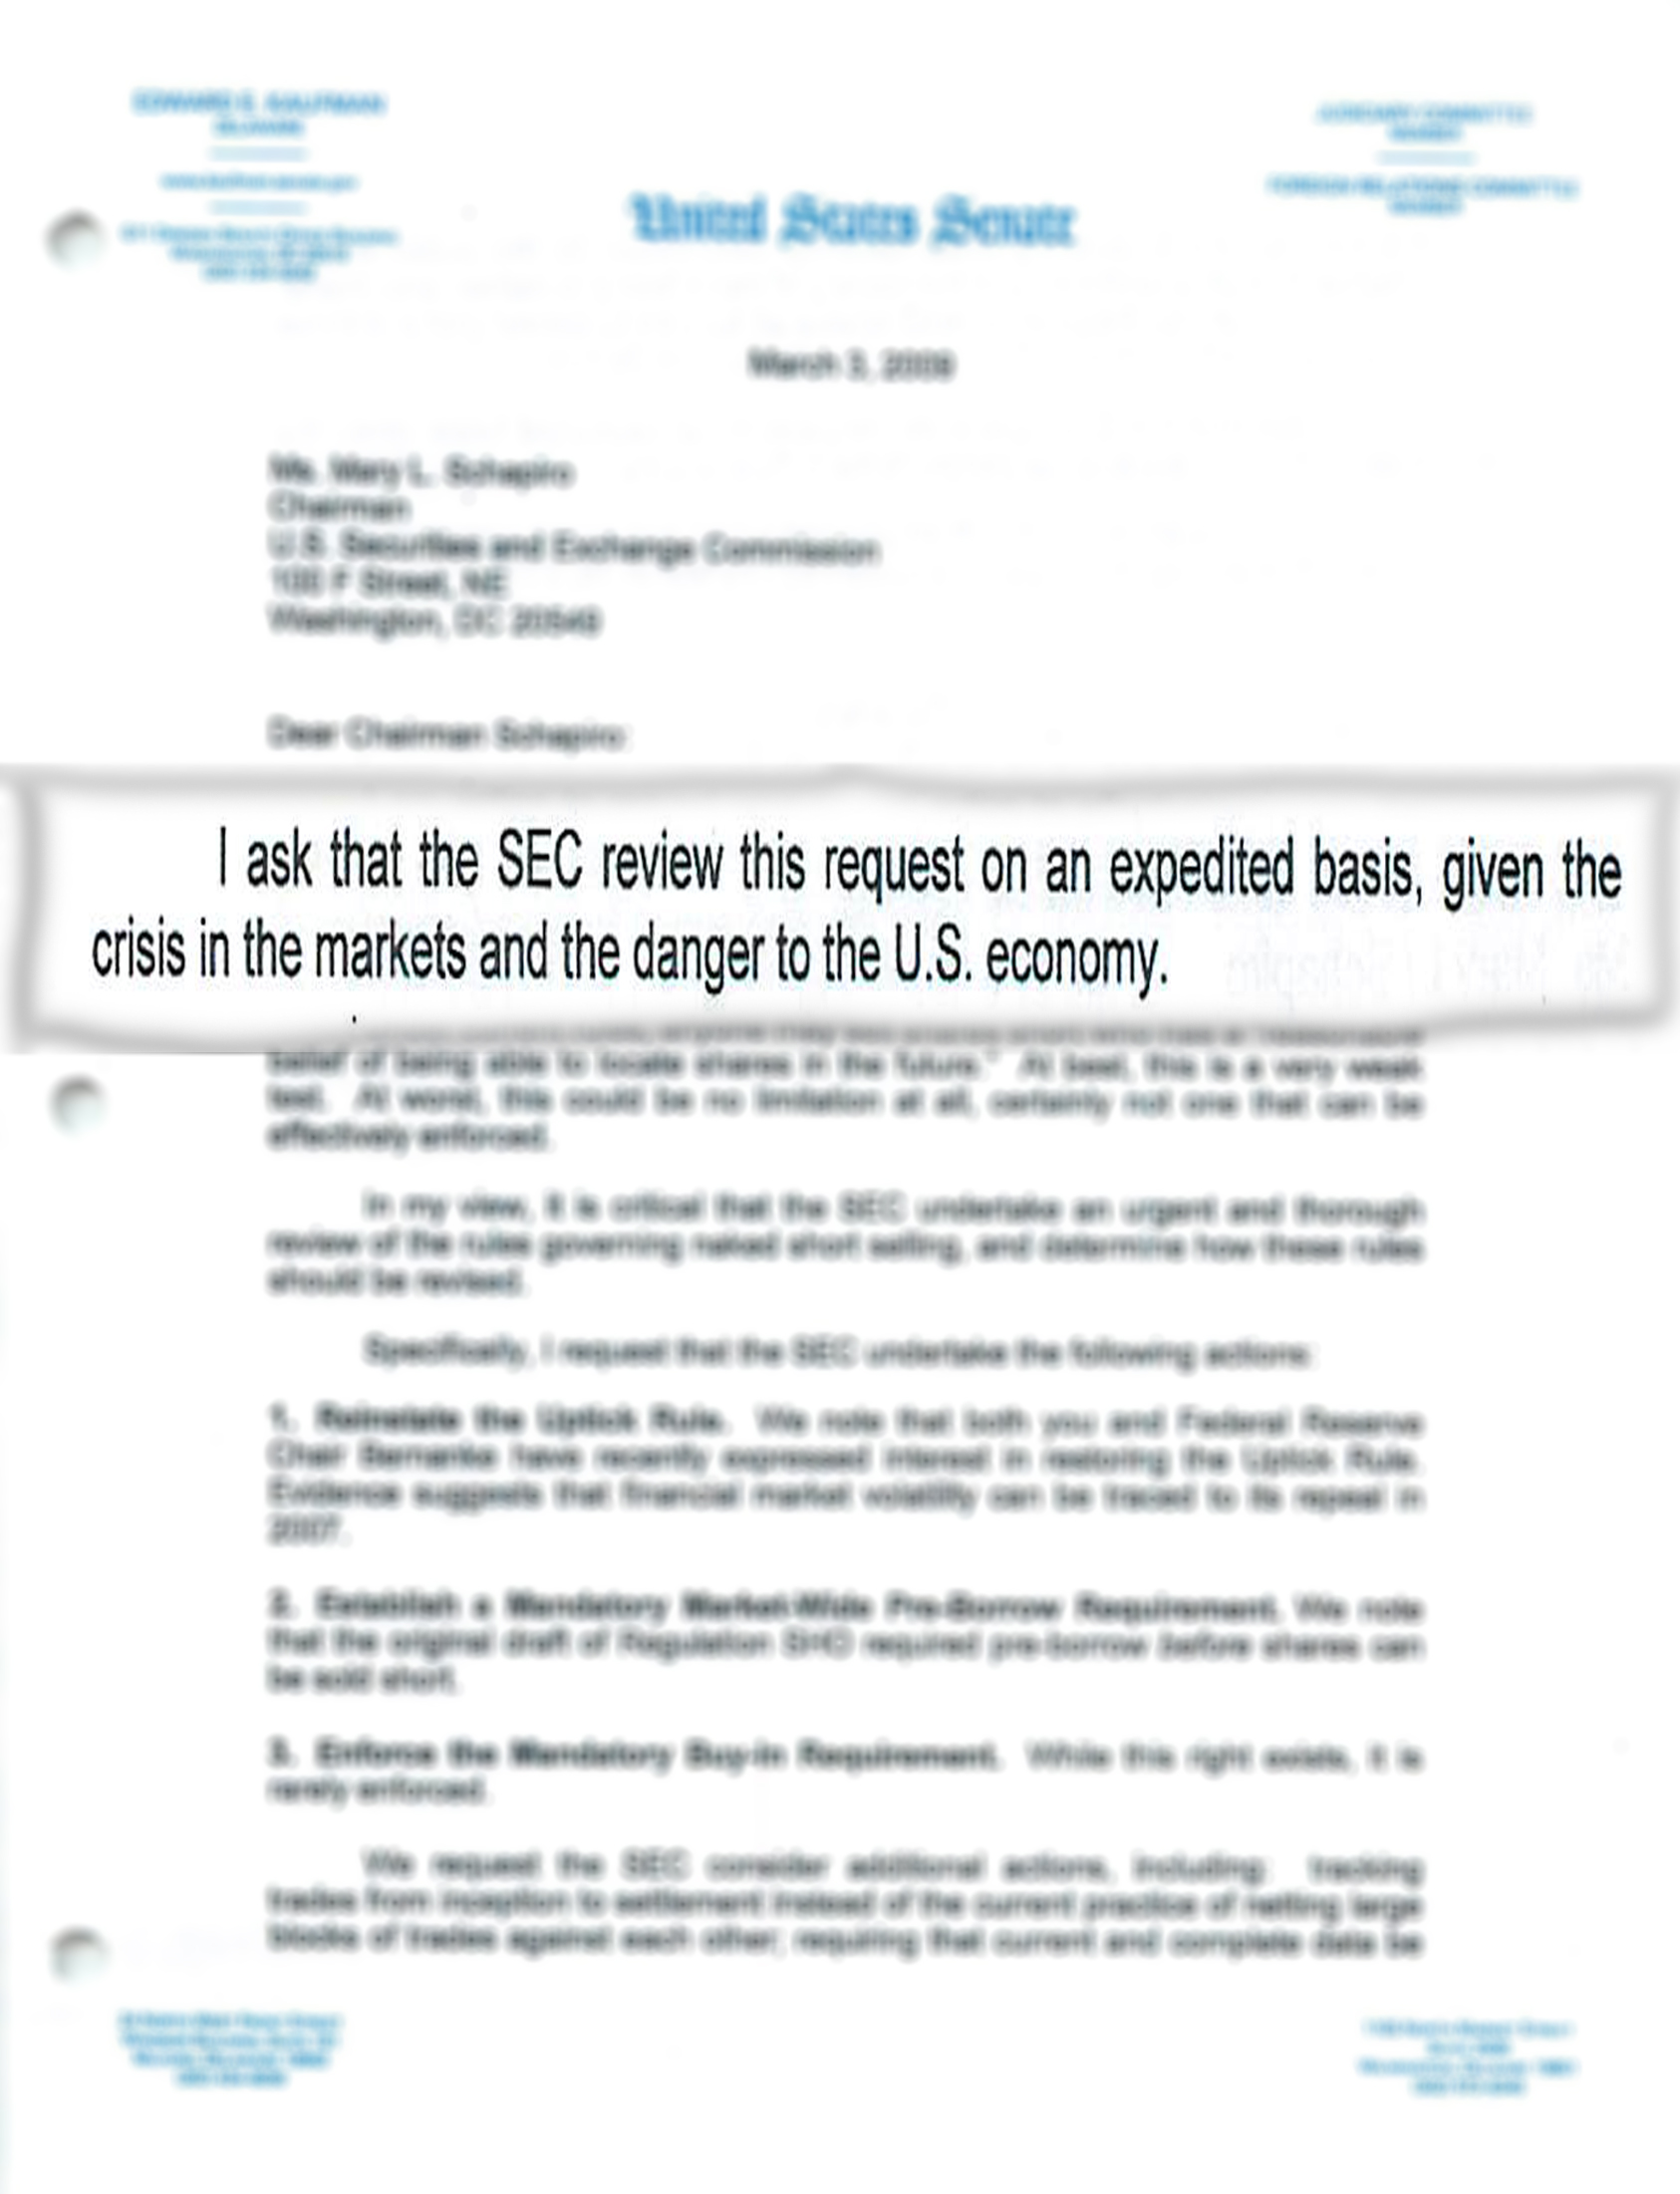 Letter to SEC Chairman Mary Schapiro, 2009 March 3